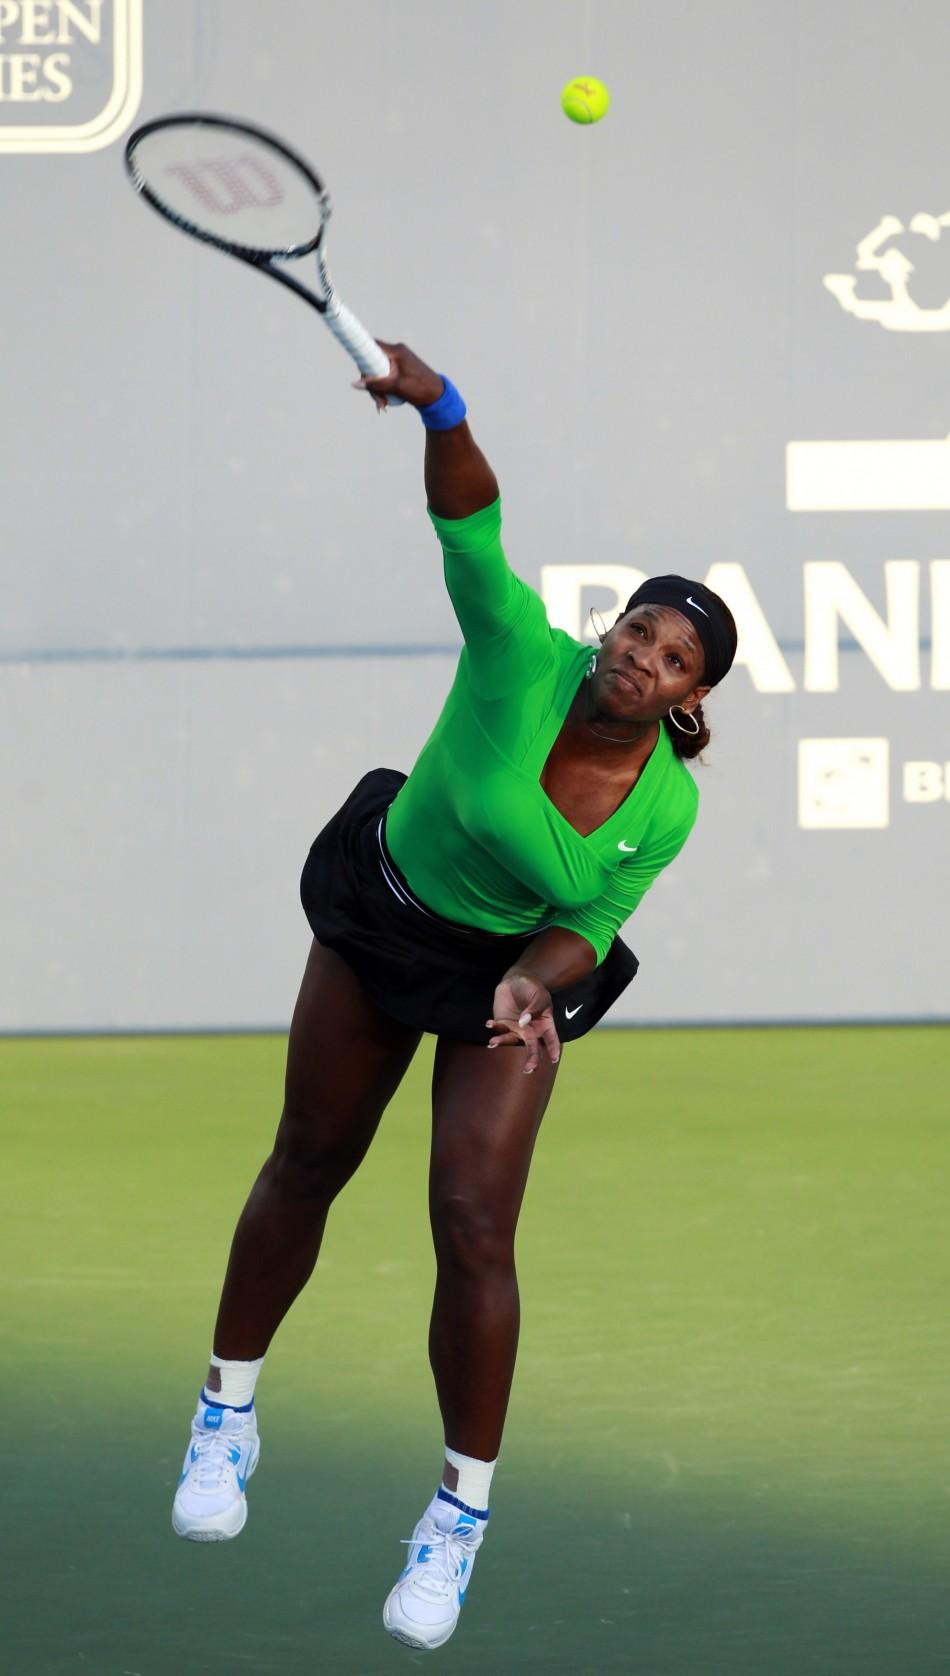 Semi-final match between Serena Williams and Sabine Lisicki